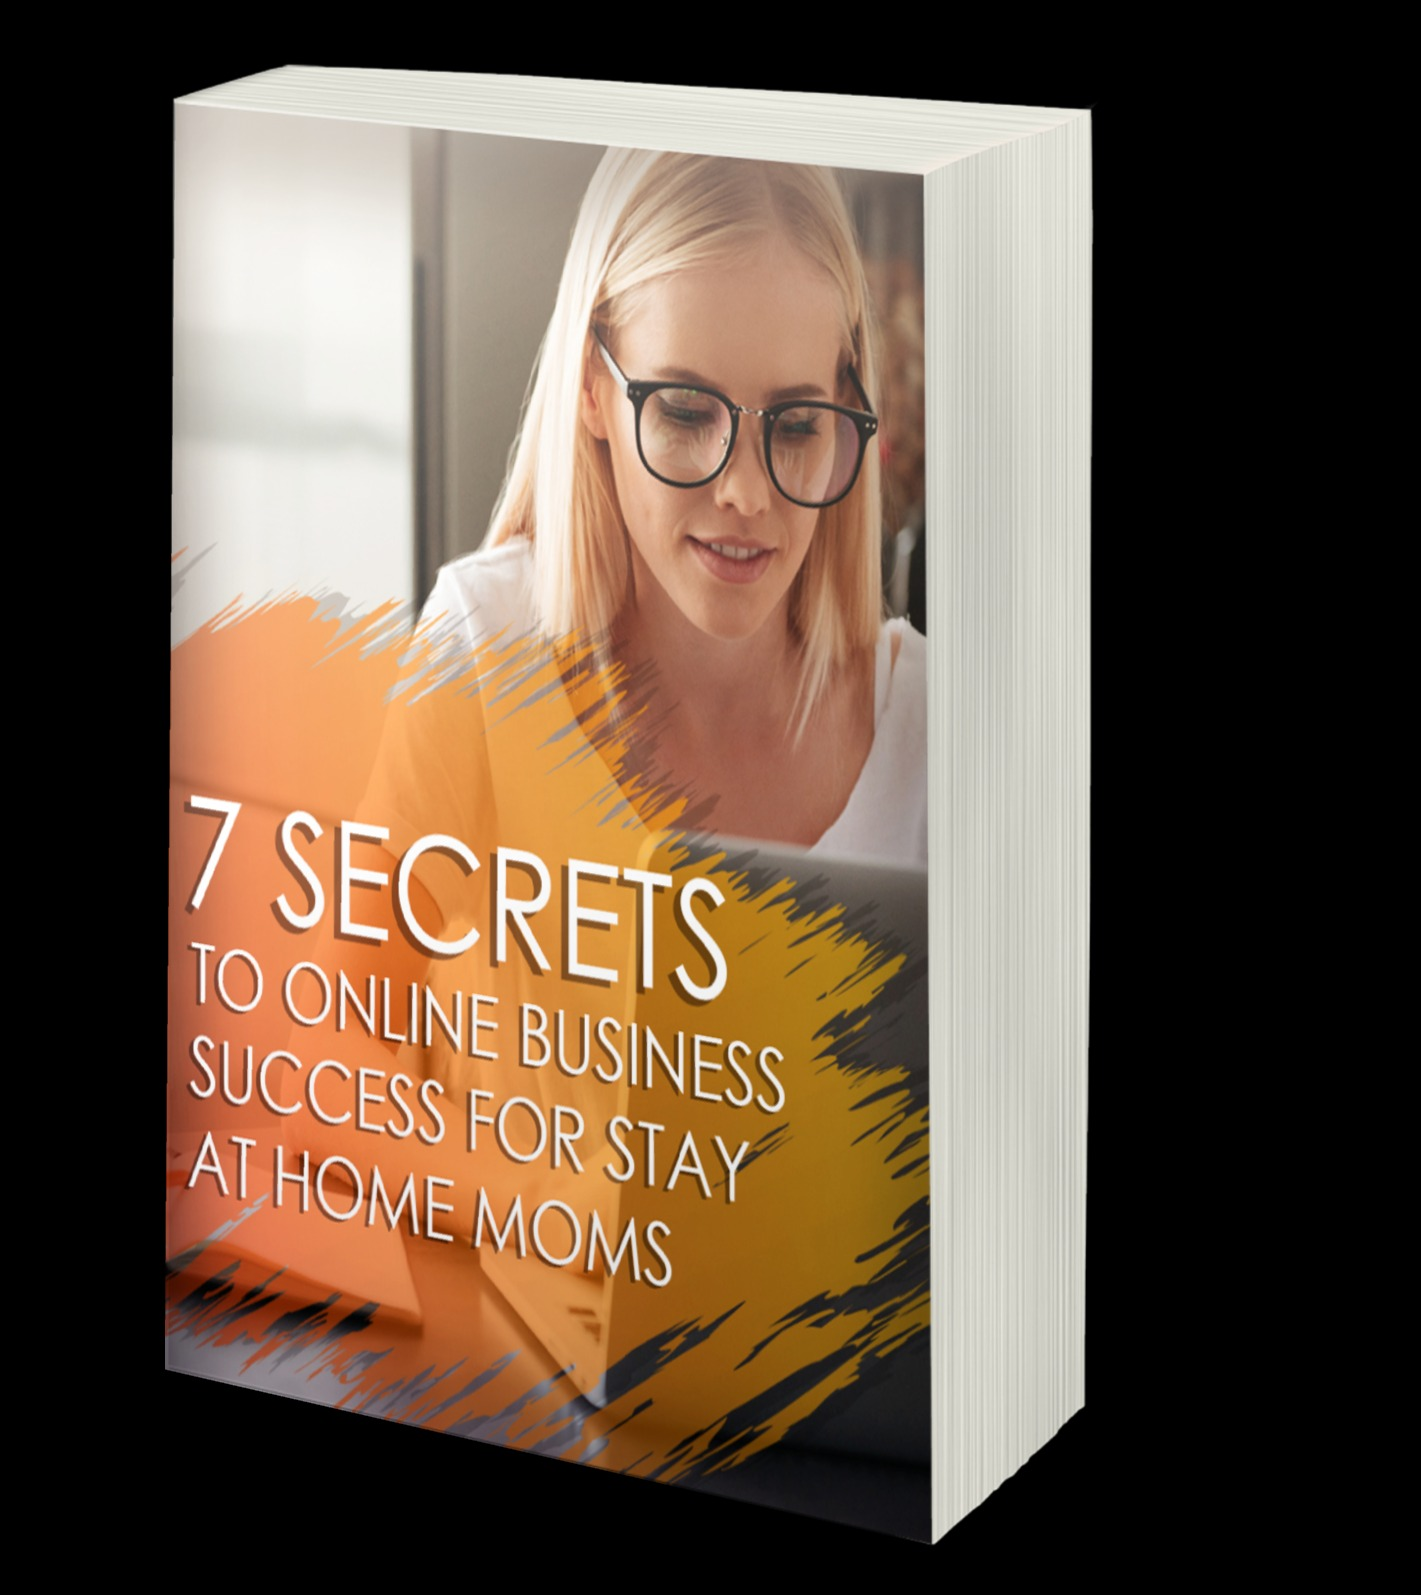 7 Secrets to Online Business Success for Stay at Home Moms